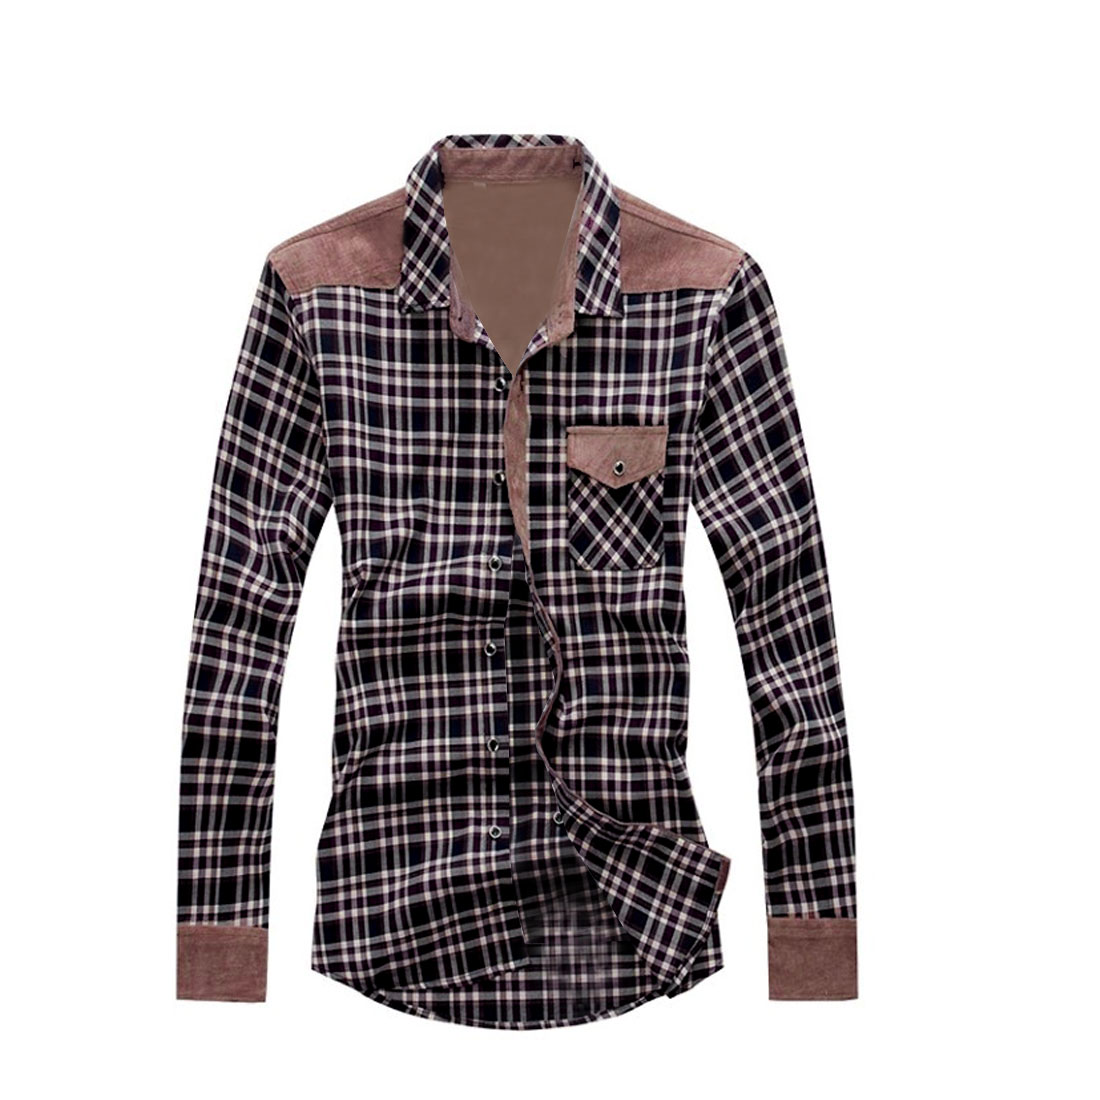 Stylish Red Beige Single-Breasted Front Plaids Casual Shirt for Man M